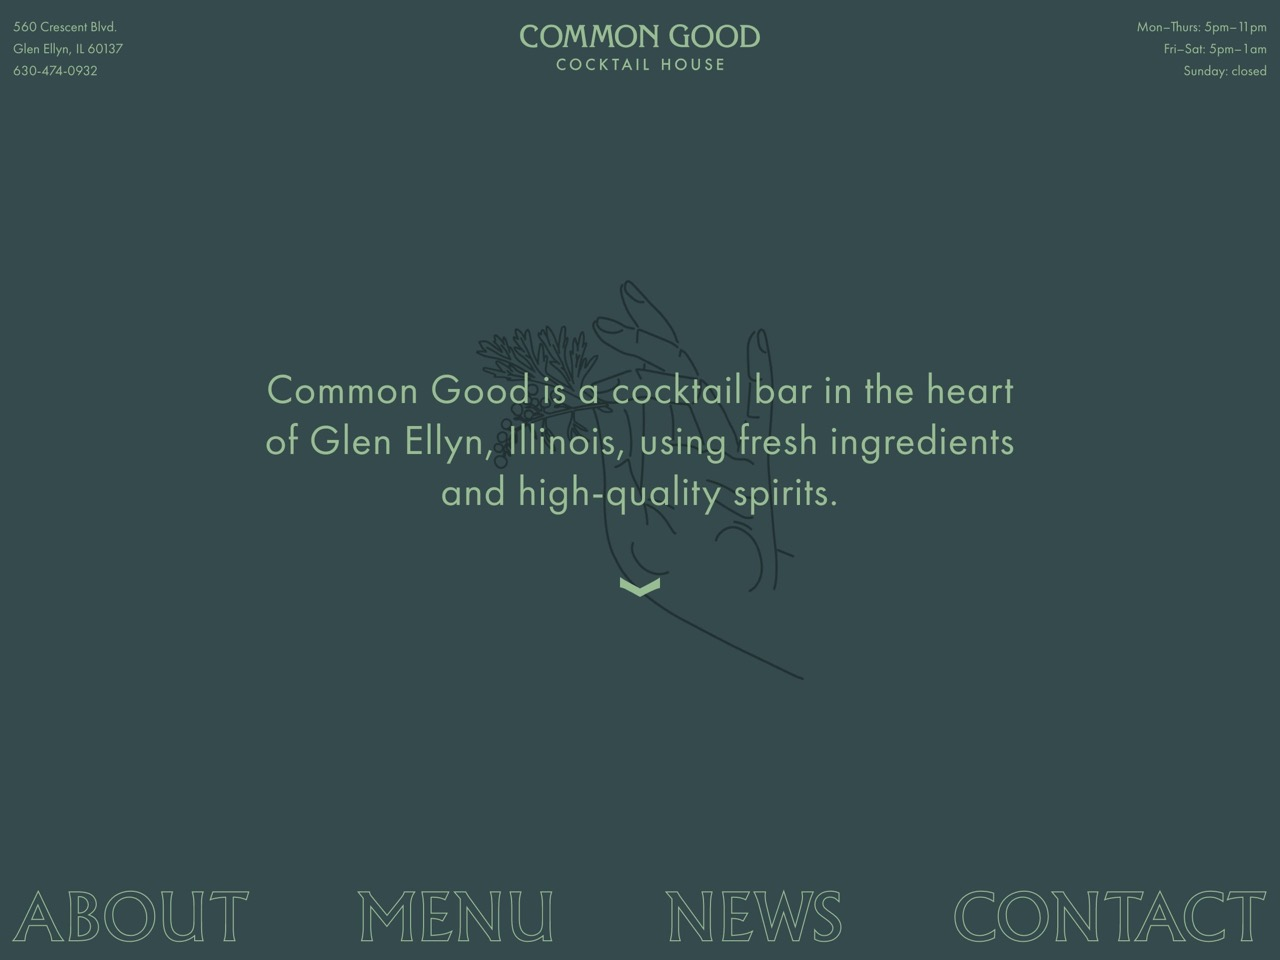 Common good cocktail house   cocktails  beer    food in glen ellyn